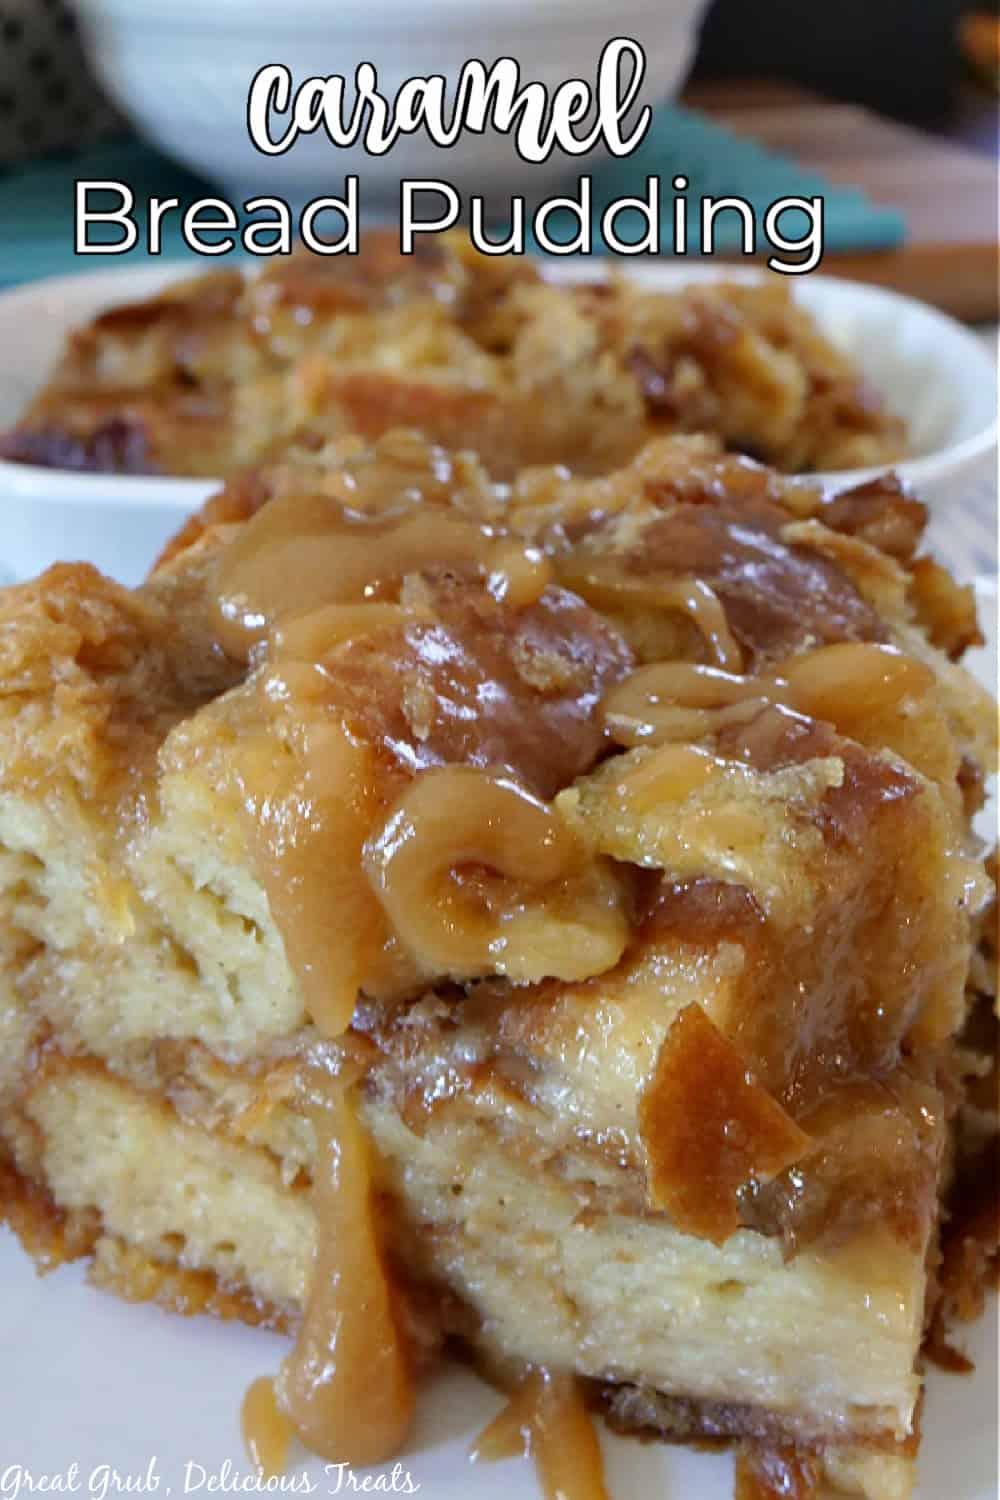 Caramel Bread Pudding is a delicious bread pudding recipe made with a homemade caramel sauce and baked until the custard is set and baked to perfection. via @terri040